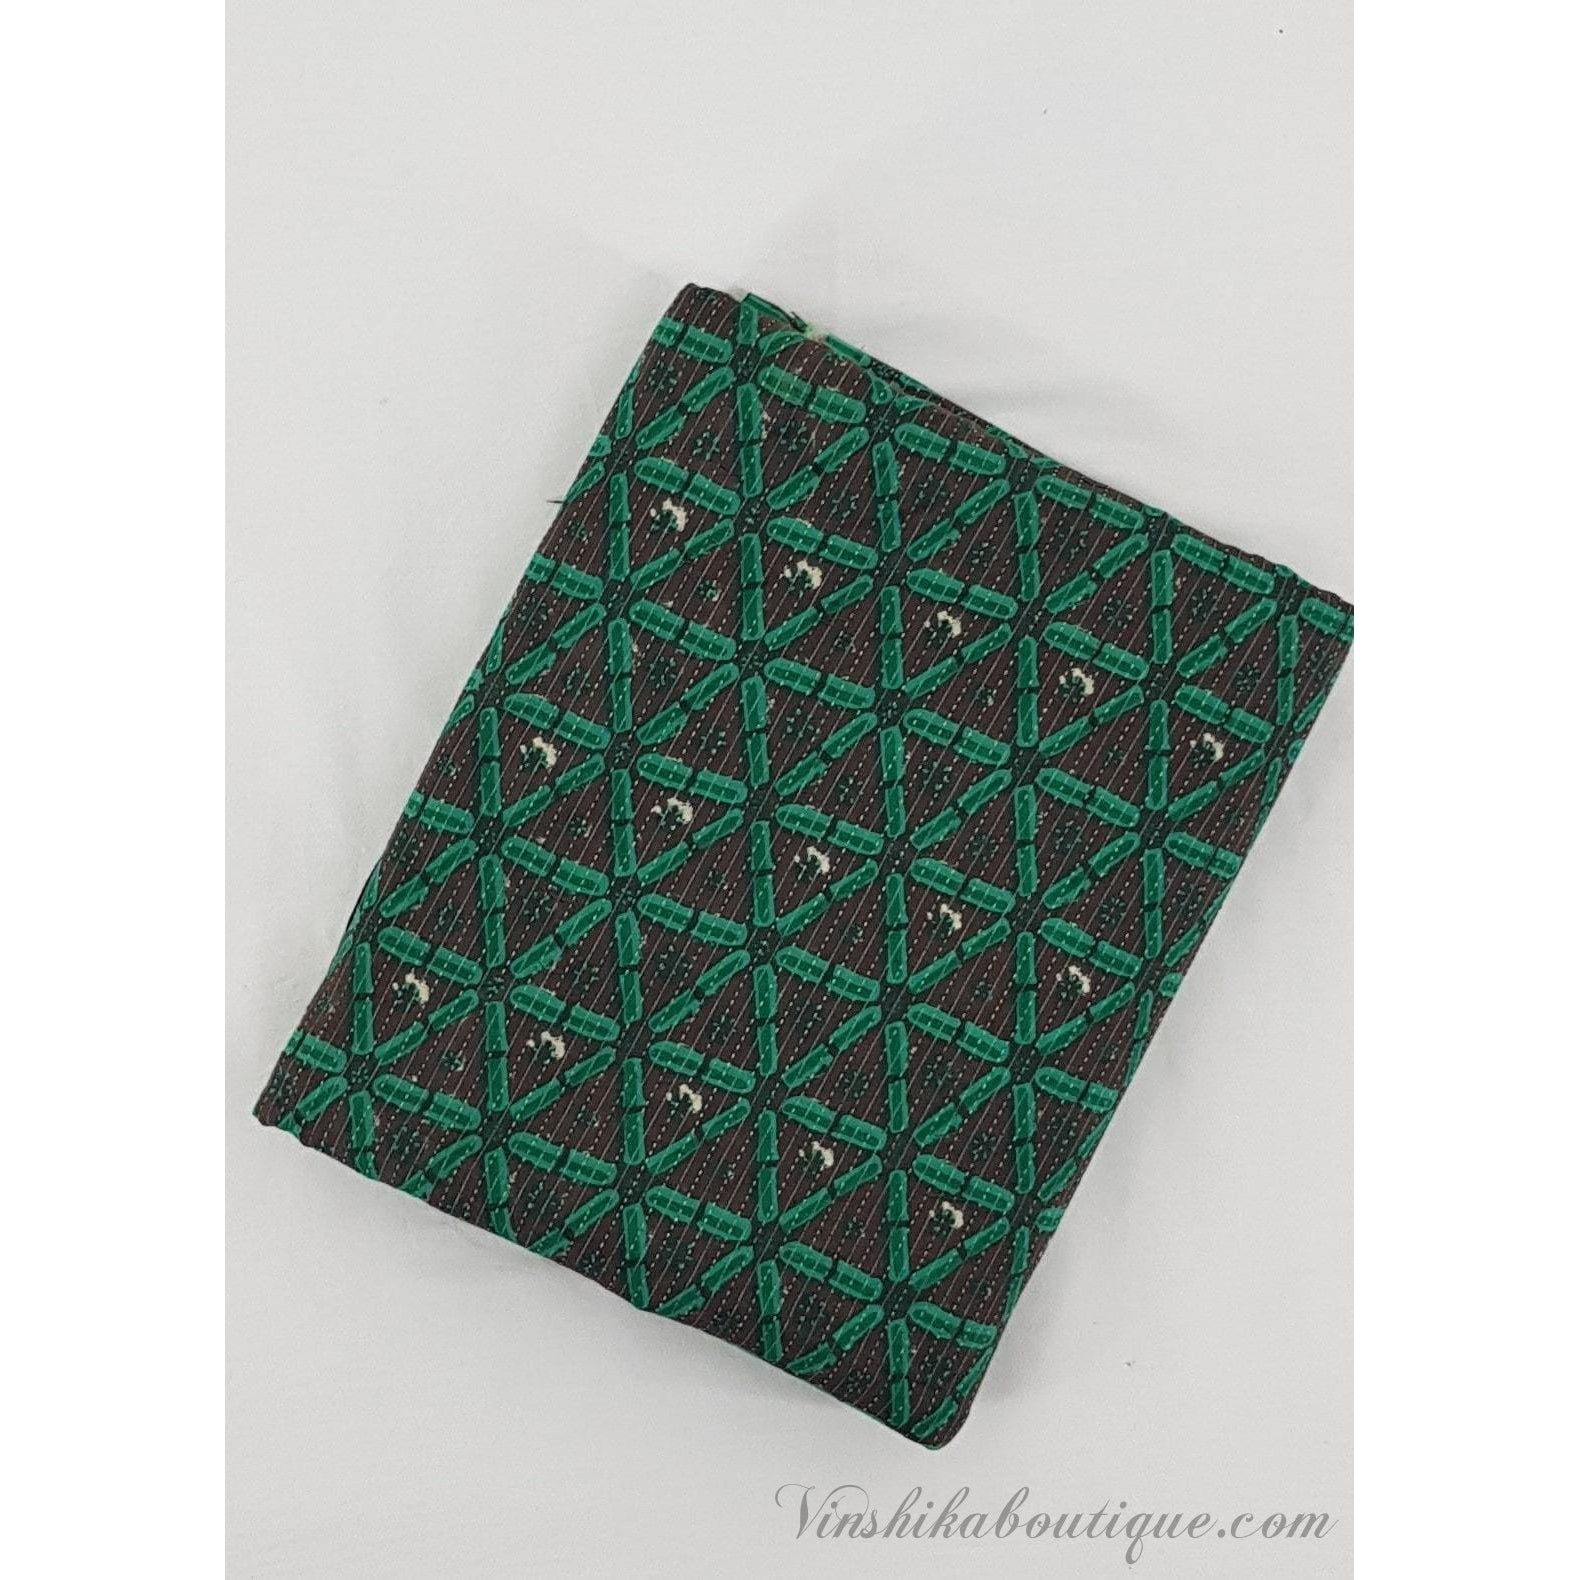 Green color block printed handloom Bagru cotton fabric - Vinshika